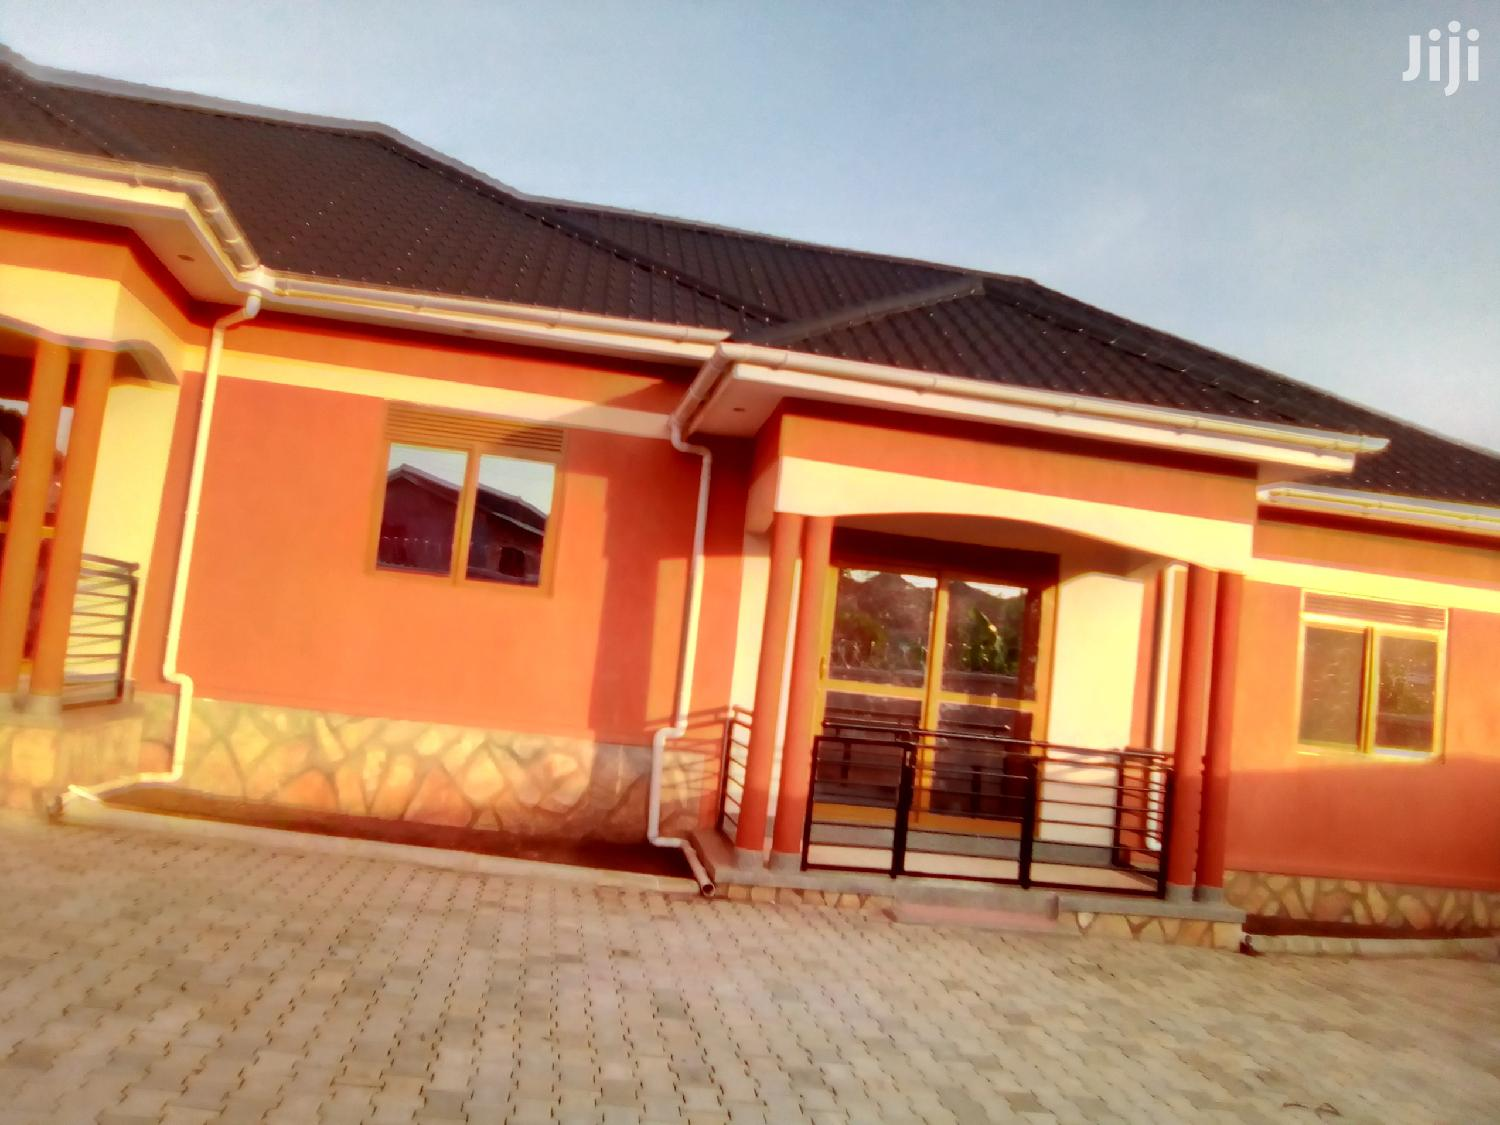 Two Bedroom House In Bweyogerere For Rent | Houses & Apartments For Rent for sale in Kampala, Central Region, Uganda